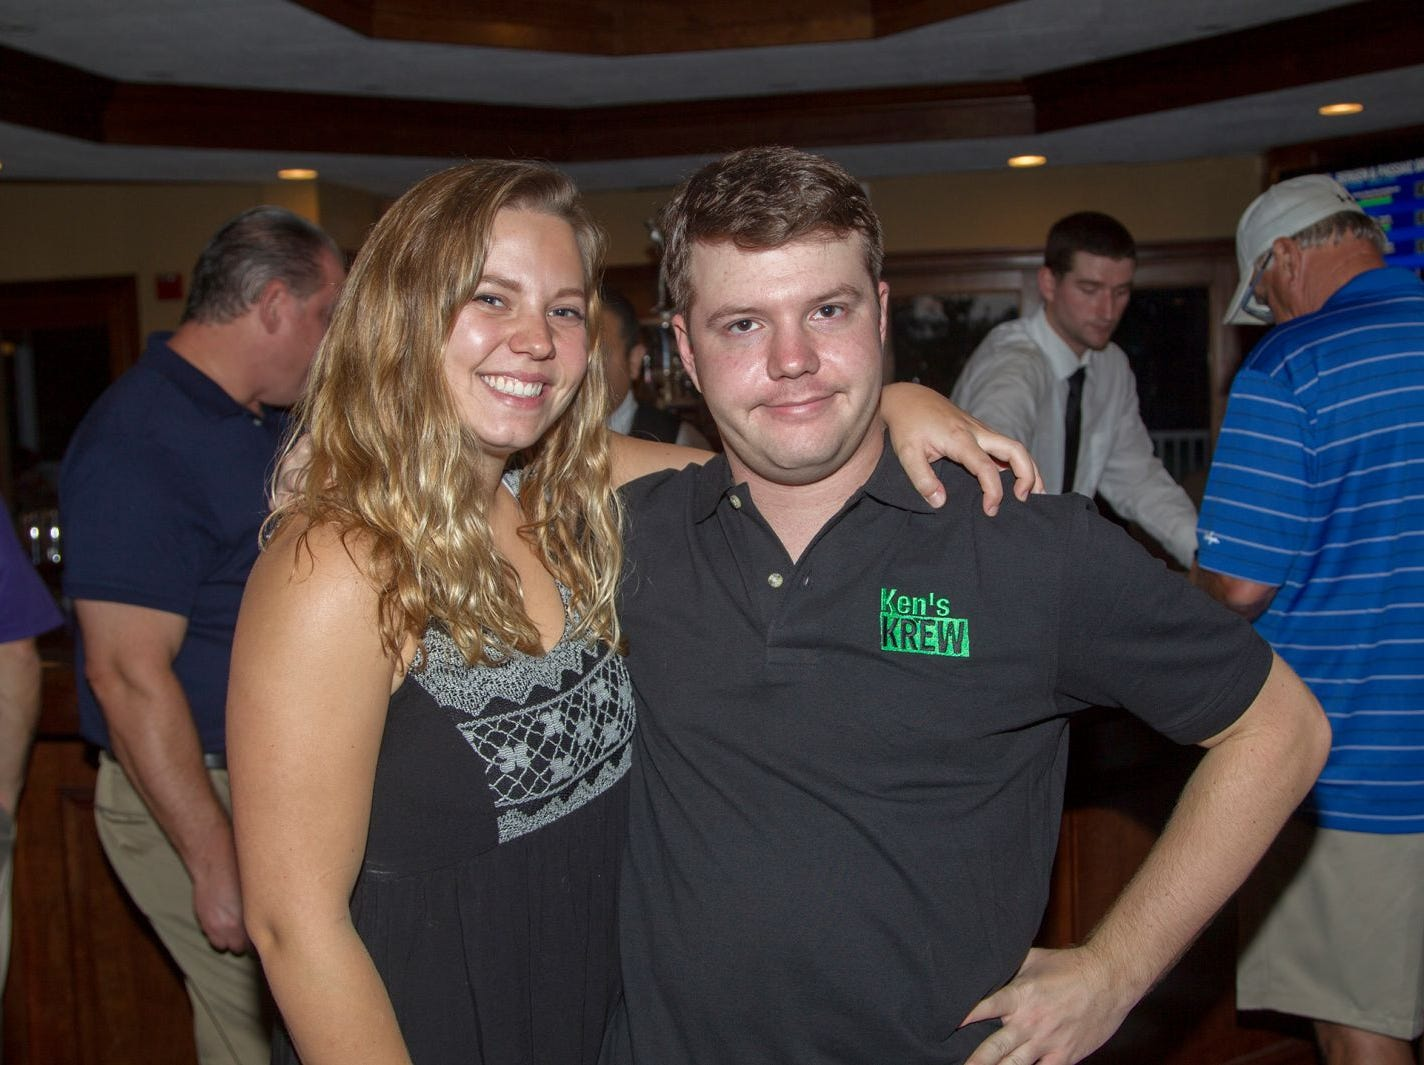 Emily and Daniel Adams. Ken's Krew Golf Outing at White Beeches Country Club in Haworth. Ken's Krew provides vocational training and job placement services for young adults with intellectual and developmental disabilities. 10/09/2018